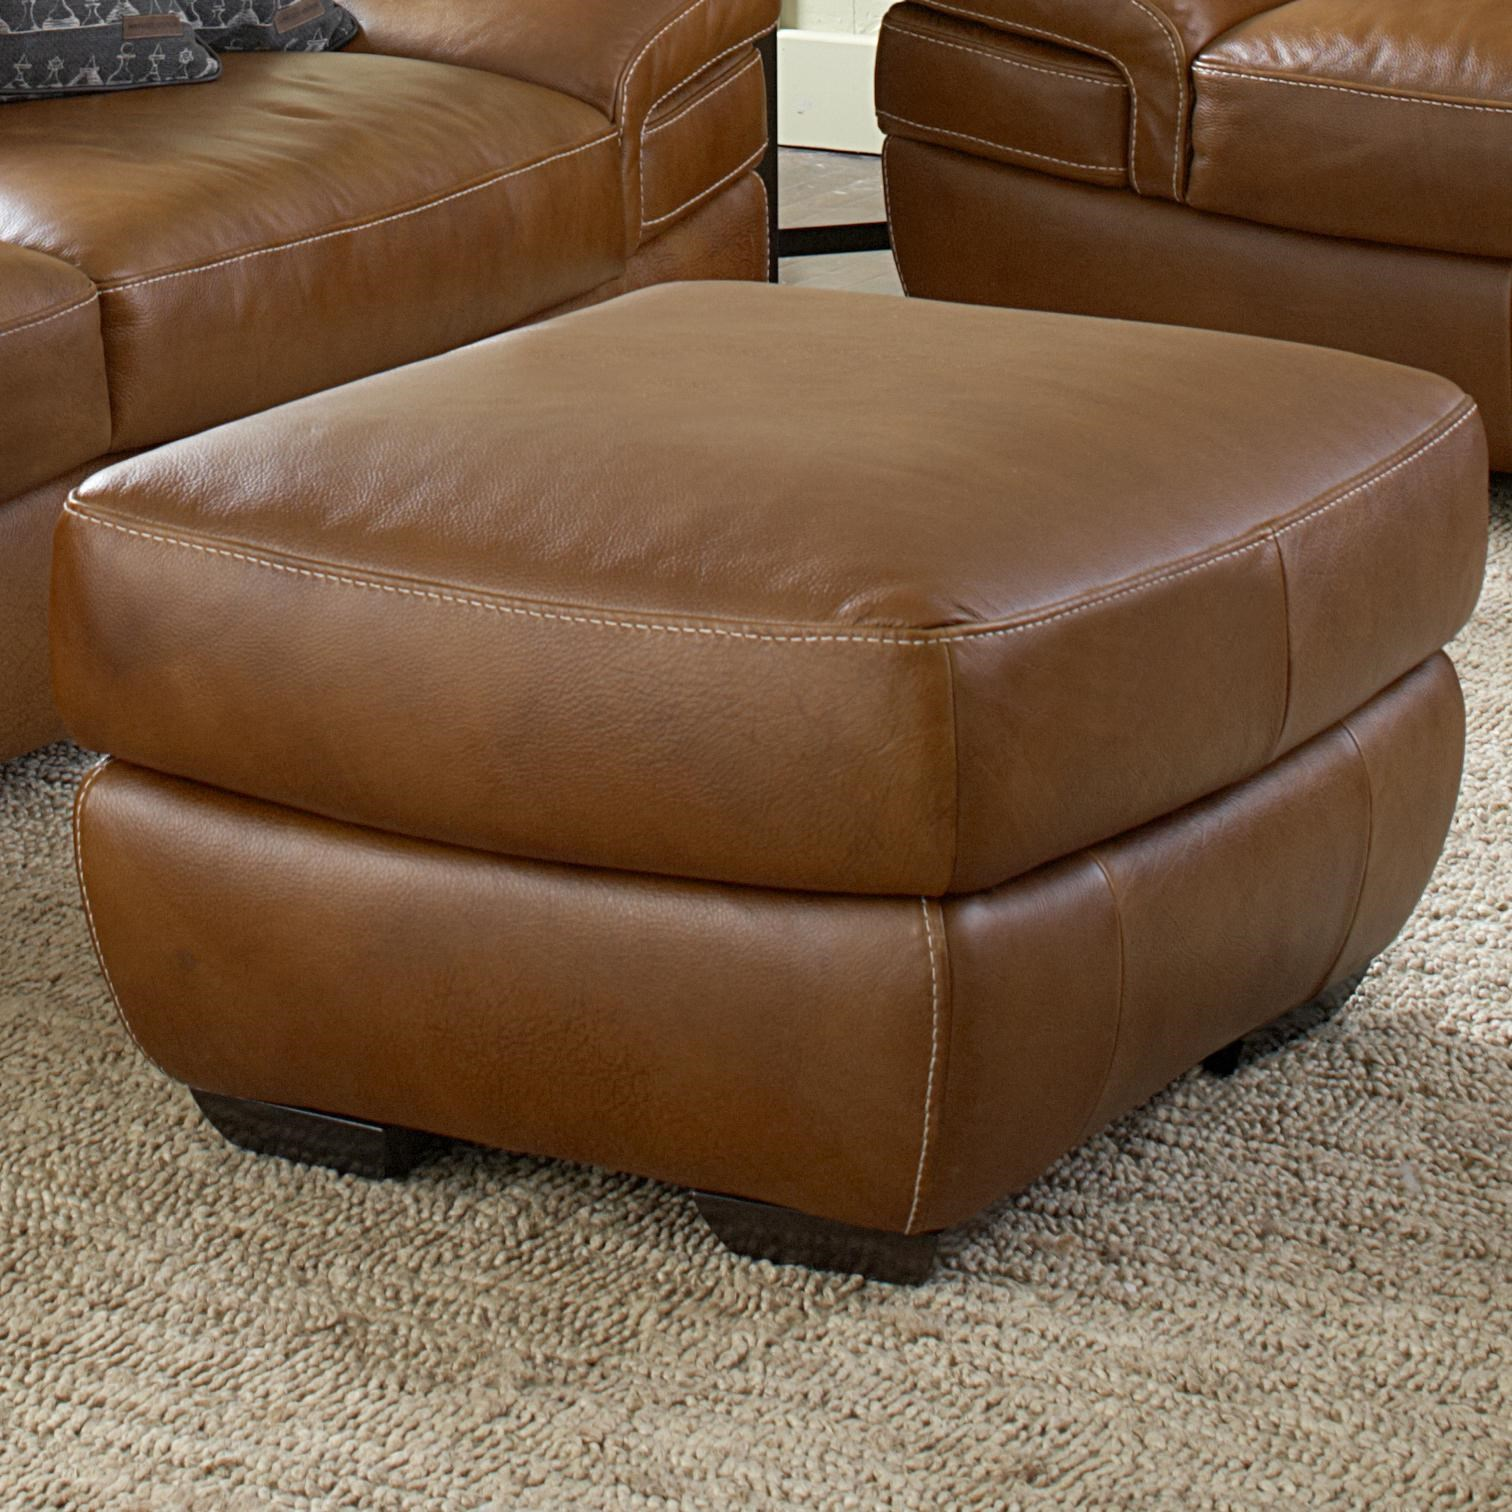 Fullsize Of Leather Plantation Chair And Ottoman